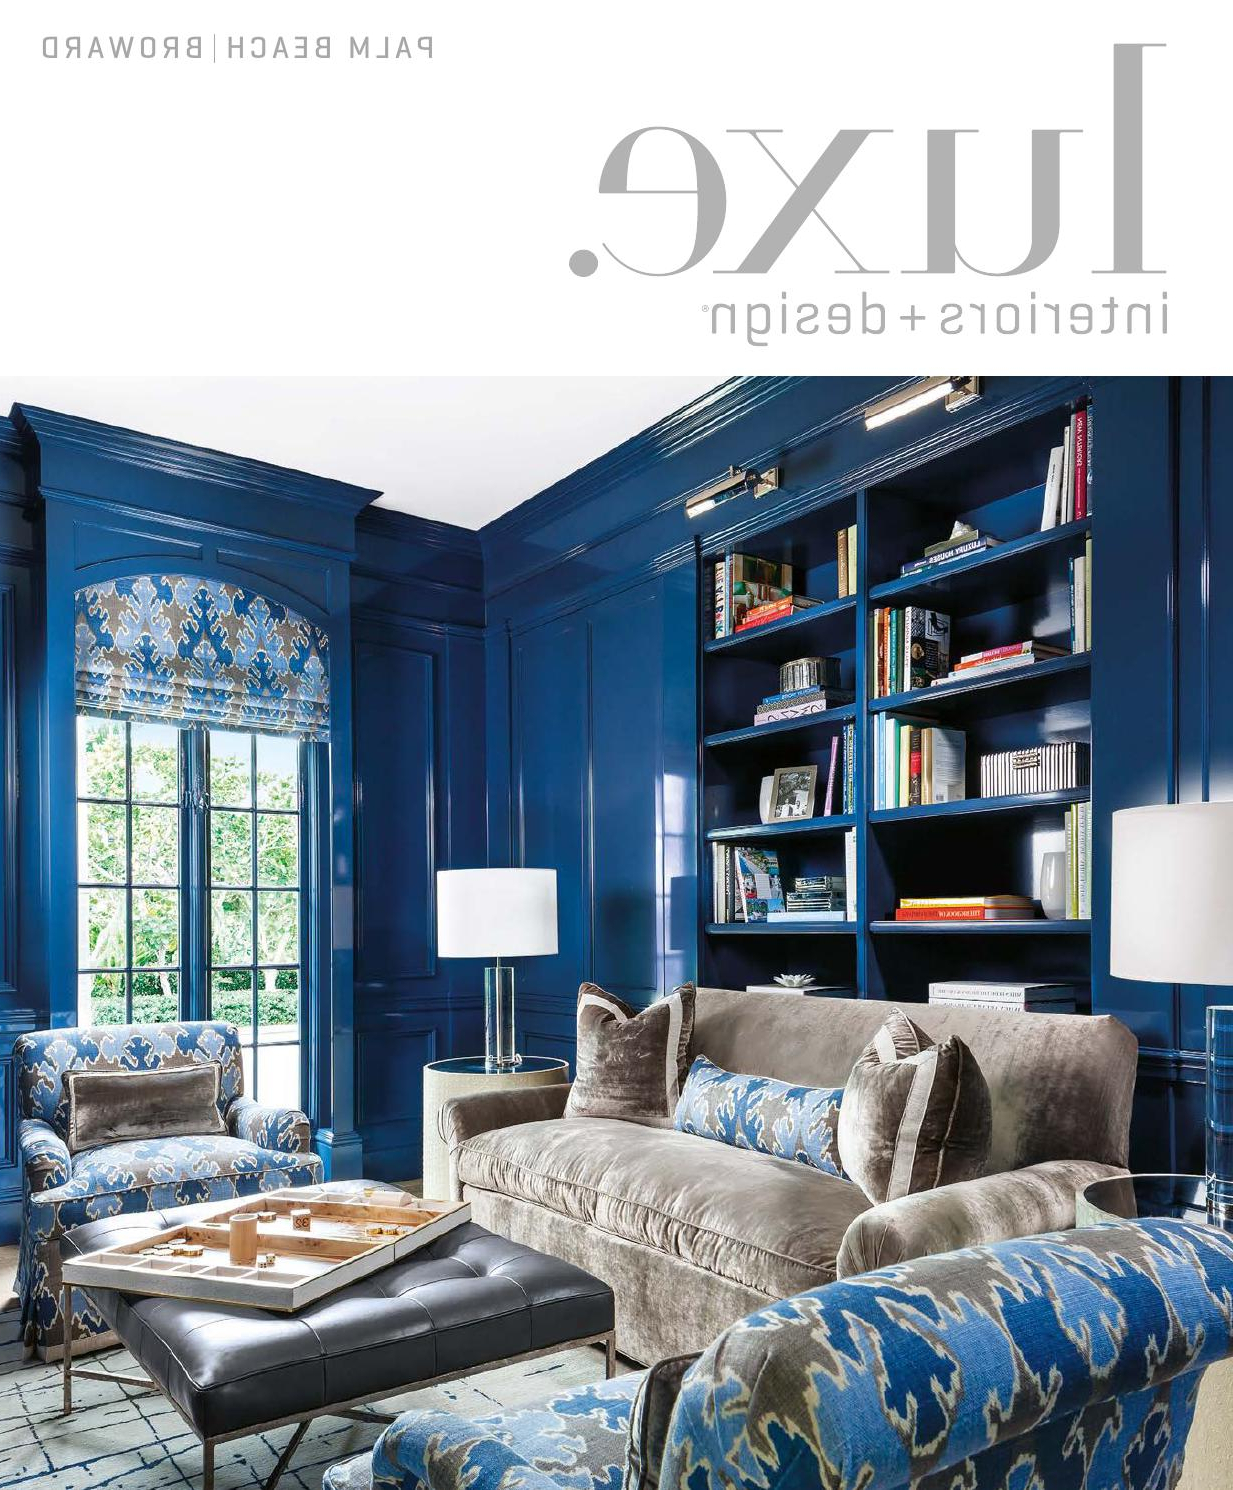 Popular Chadwick Tomato Swivel Accent Chairs Inside Luxe Magazine November 2015 Palm Beachsandow® – Issuu (View 12 of 20)